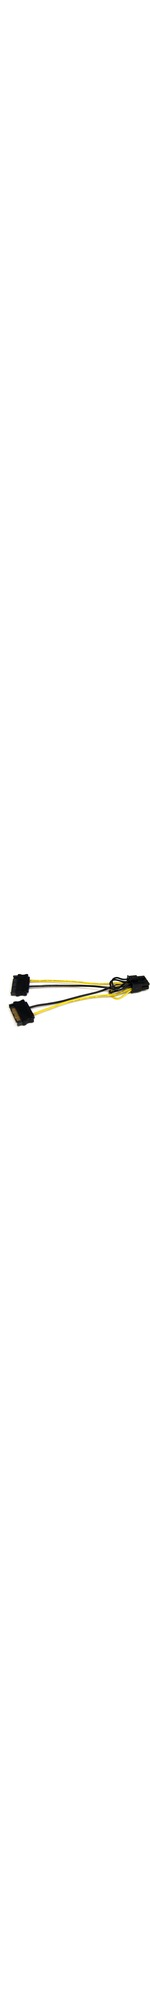 StarTech.com 6in SATA Power to 8 Pin PCI Express Video Card Power Cable Adapter - 6 - SATA - PCI-E